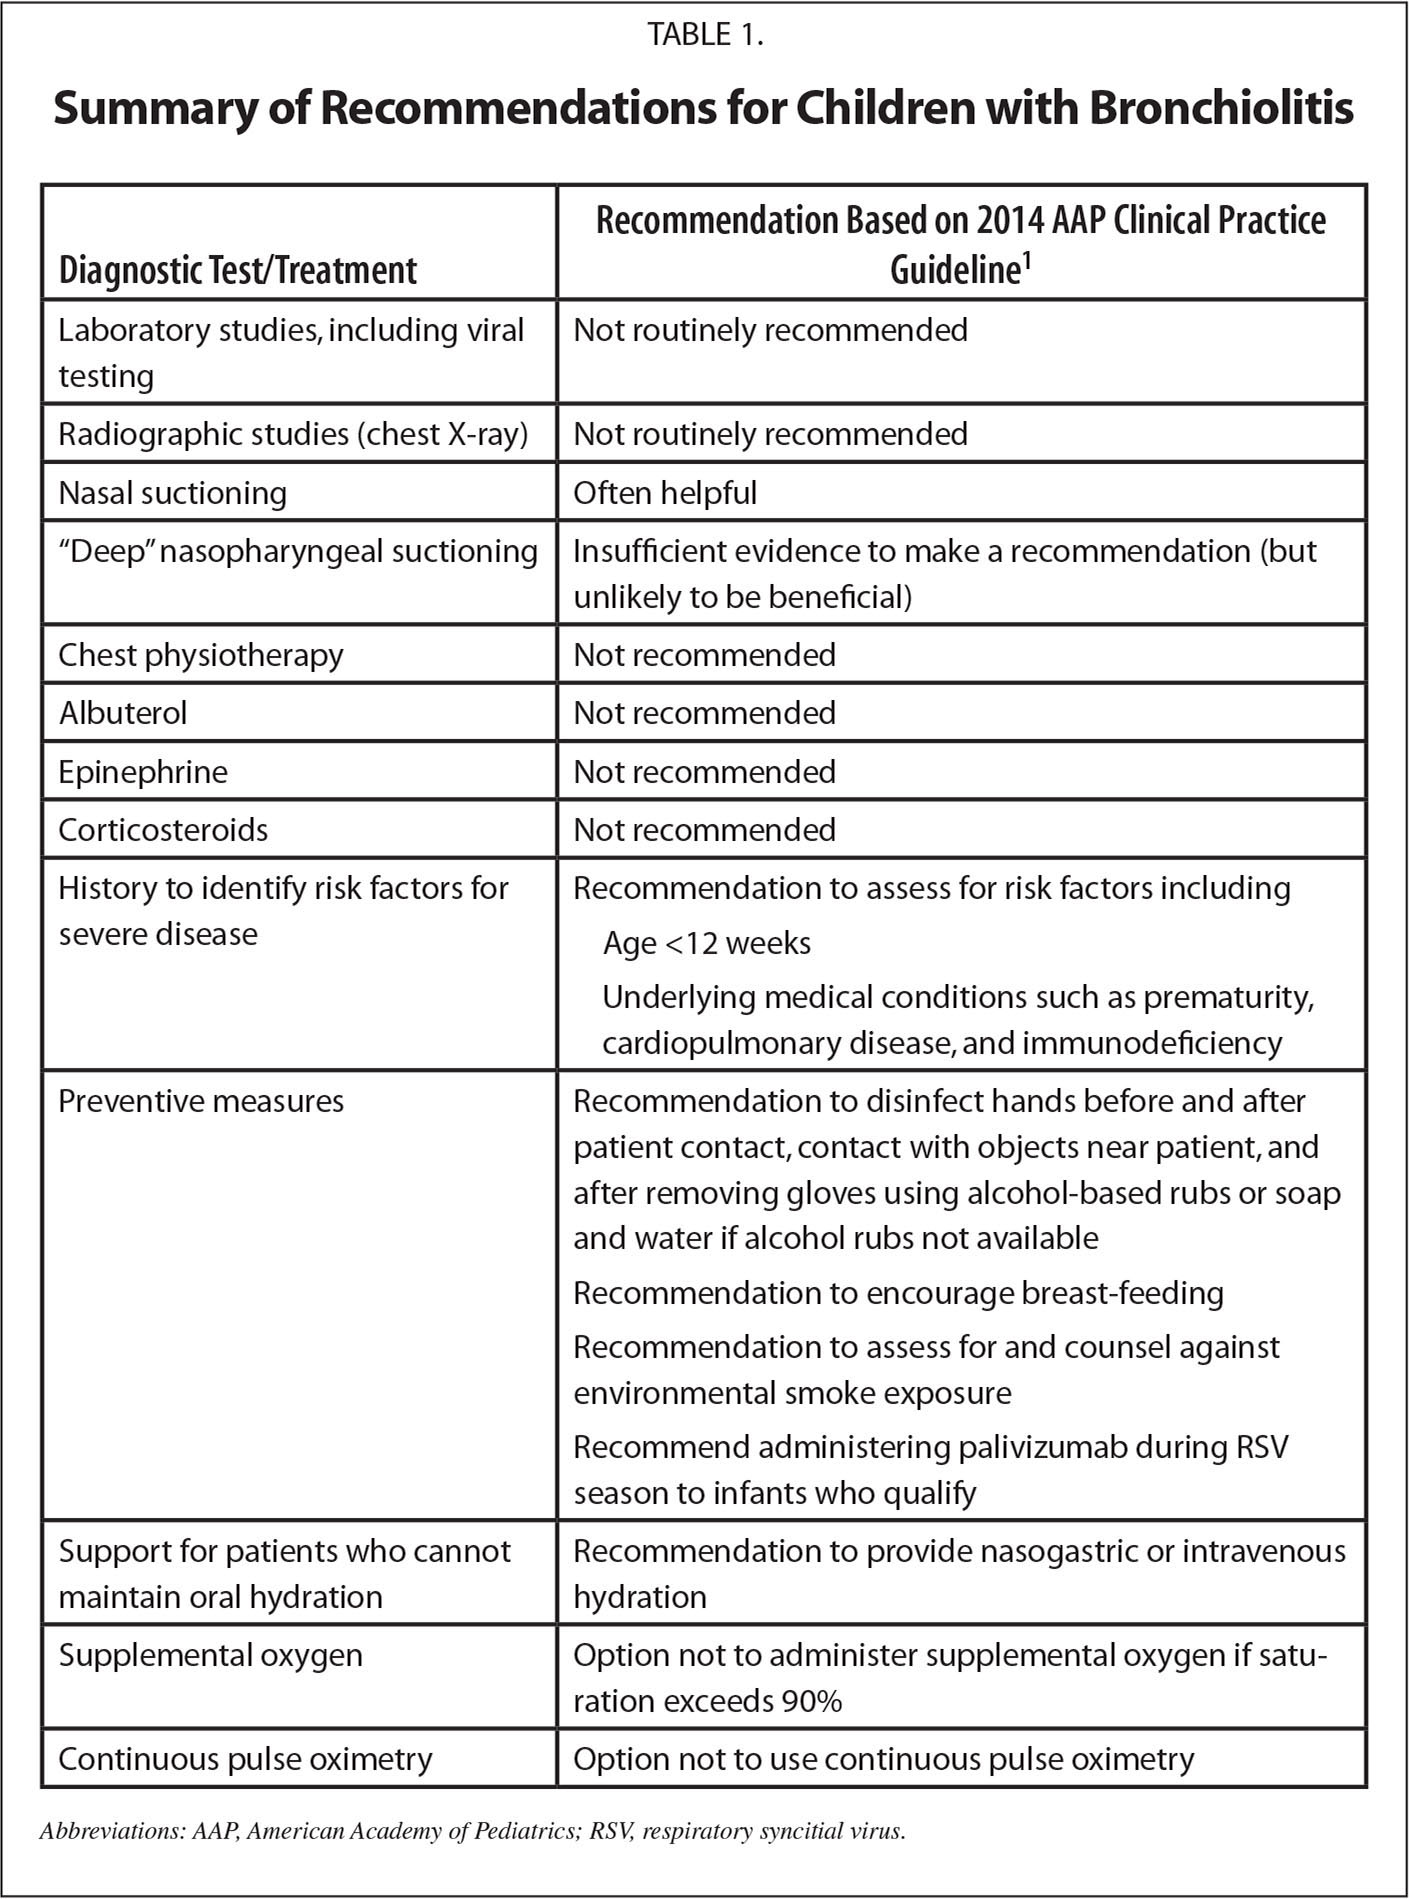 Summary of Recommendations for Children with Bronchiolitis